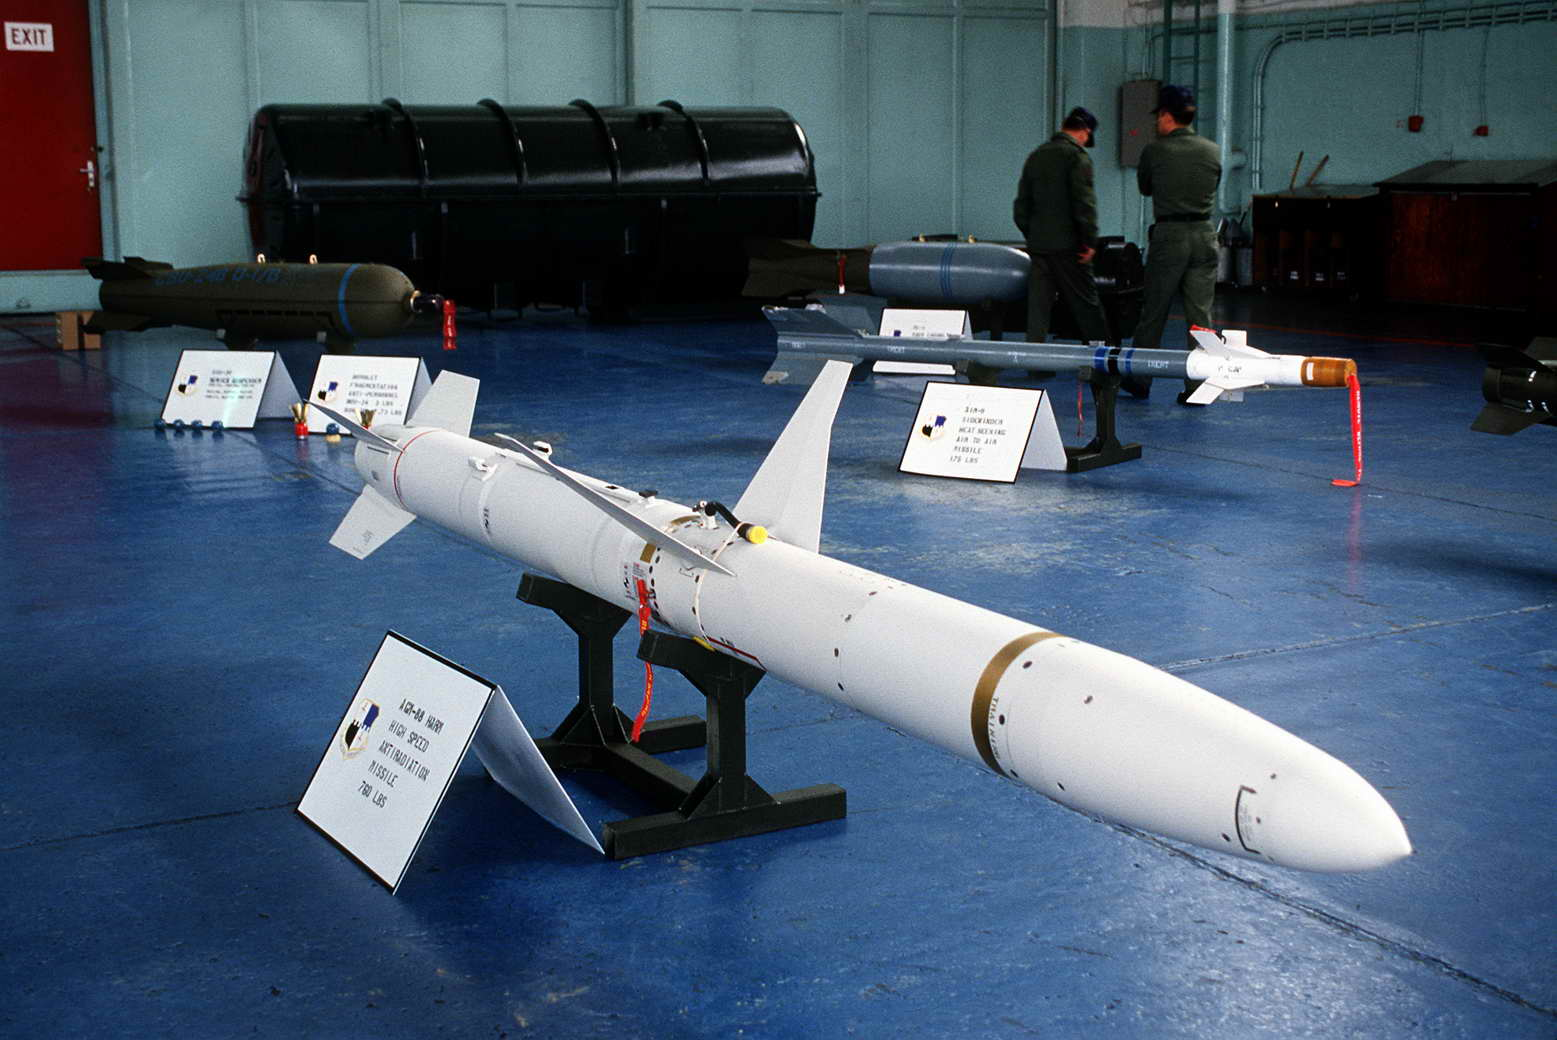 AGM-88_HARM_in_hangar